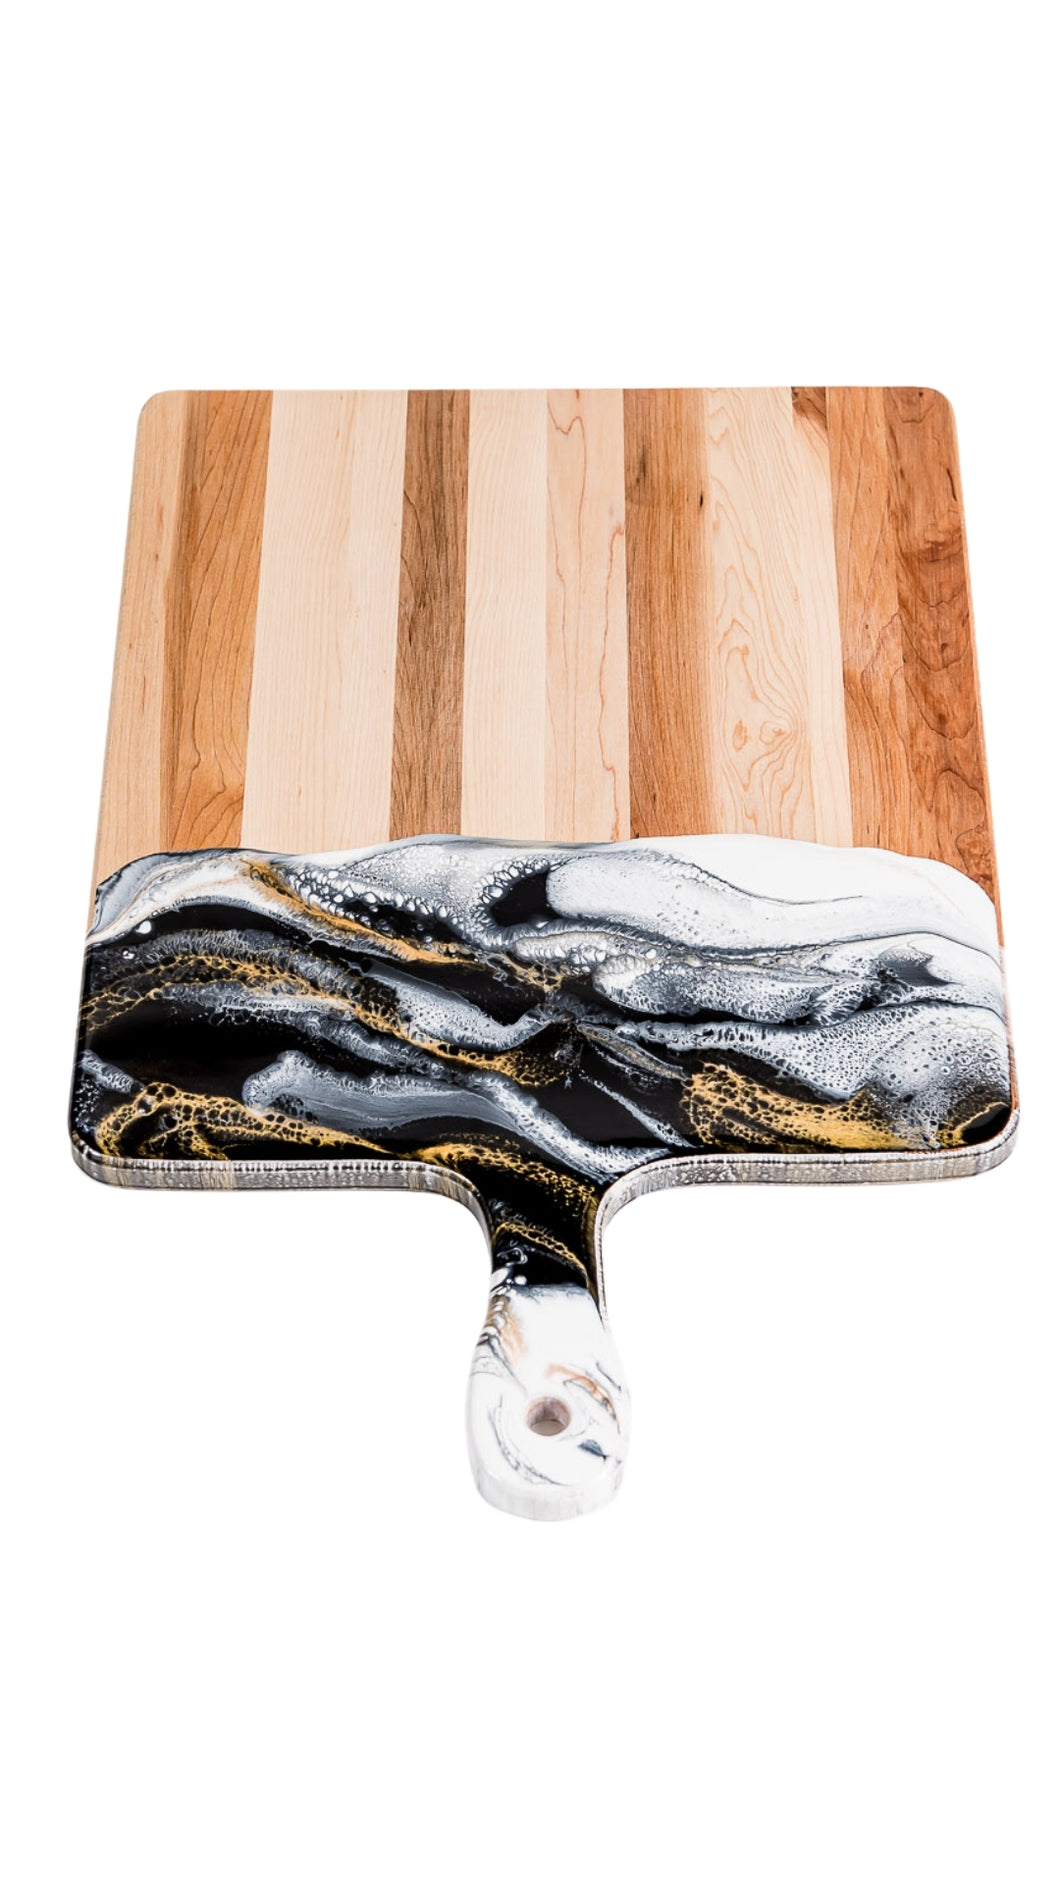 Black, White, and Gold Cheeseboard 15